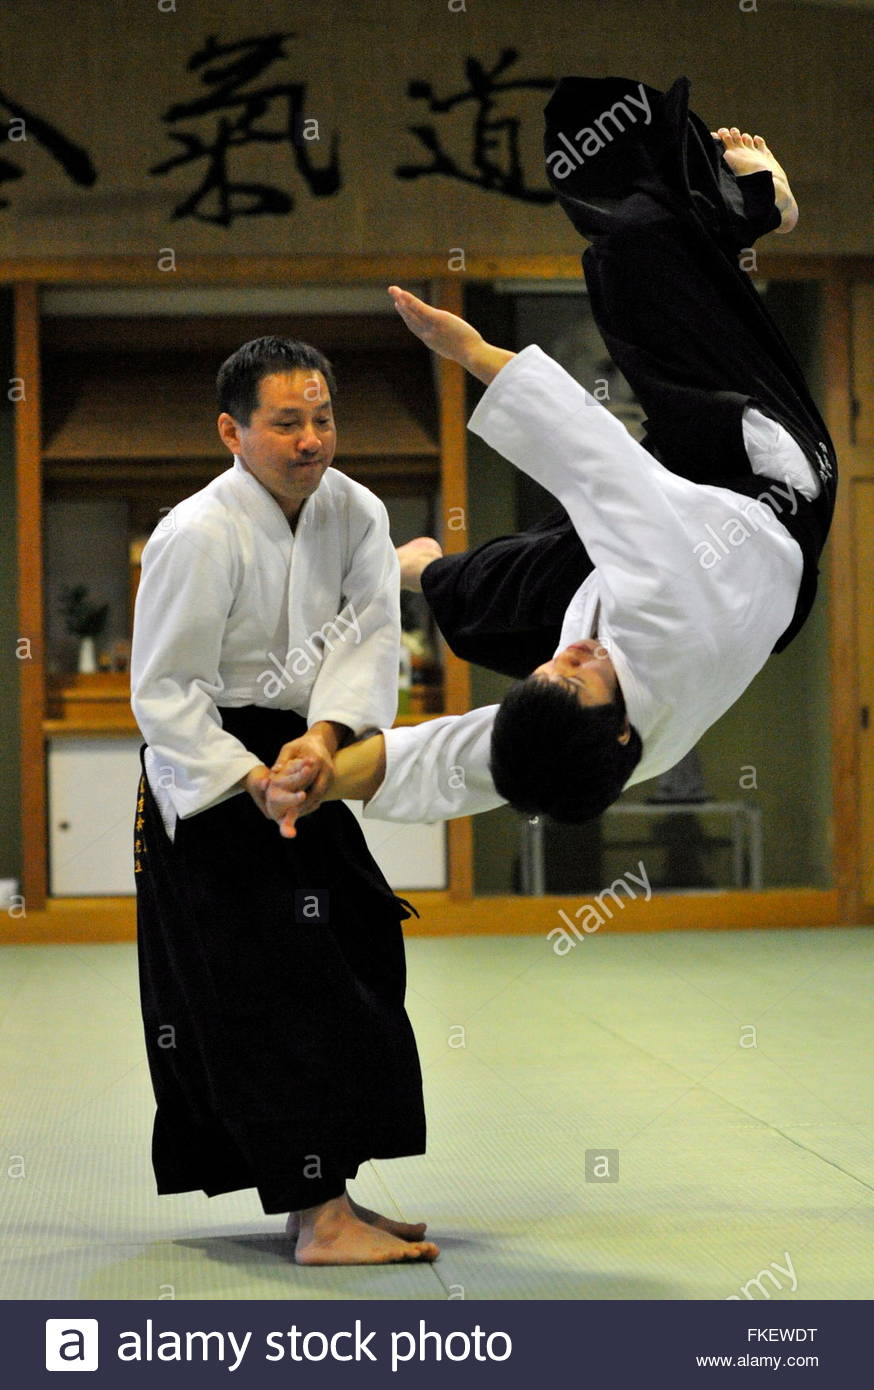 sports athlete svetlana druzhinina beautiful a woman practice aikido aikido martial arts industrial complex hakama kimono